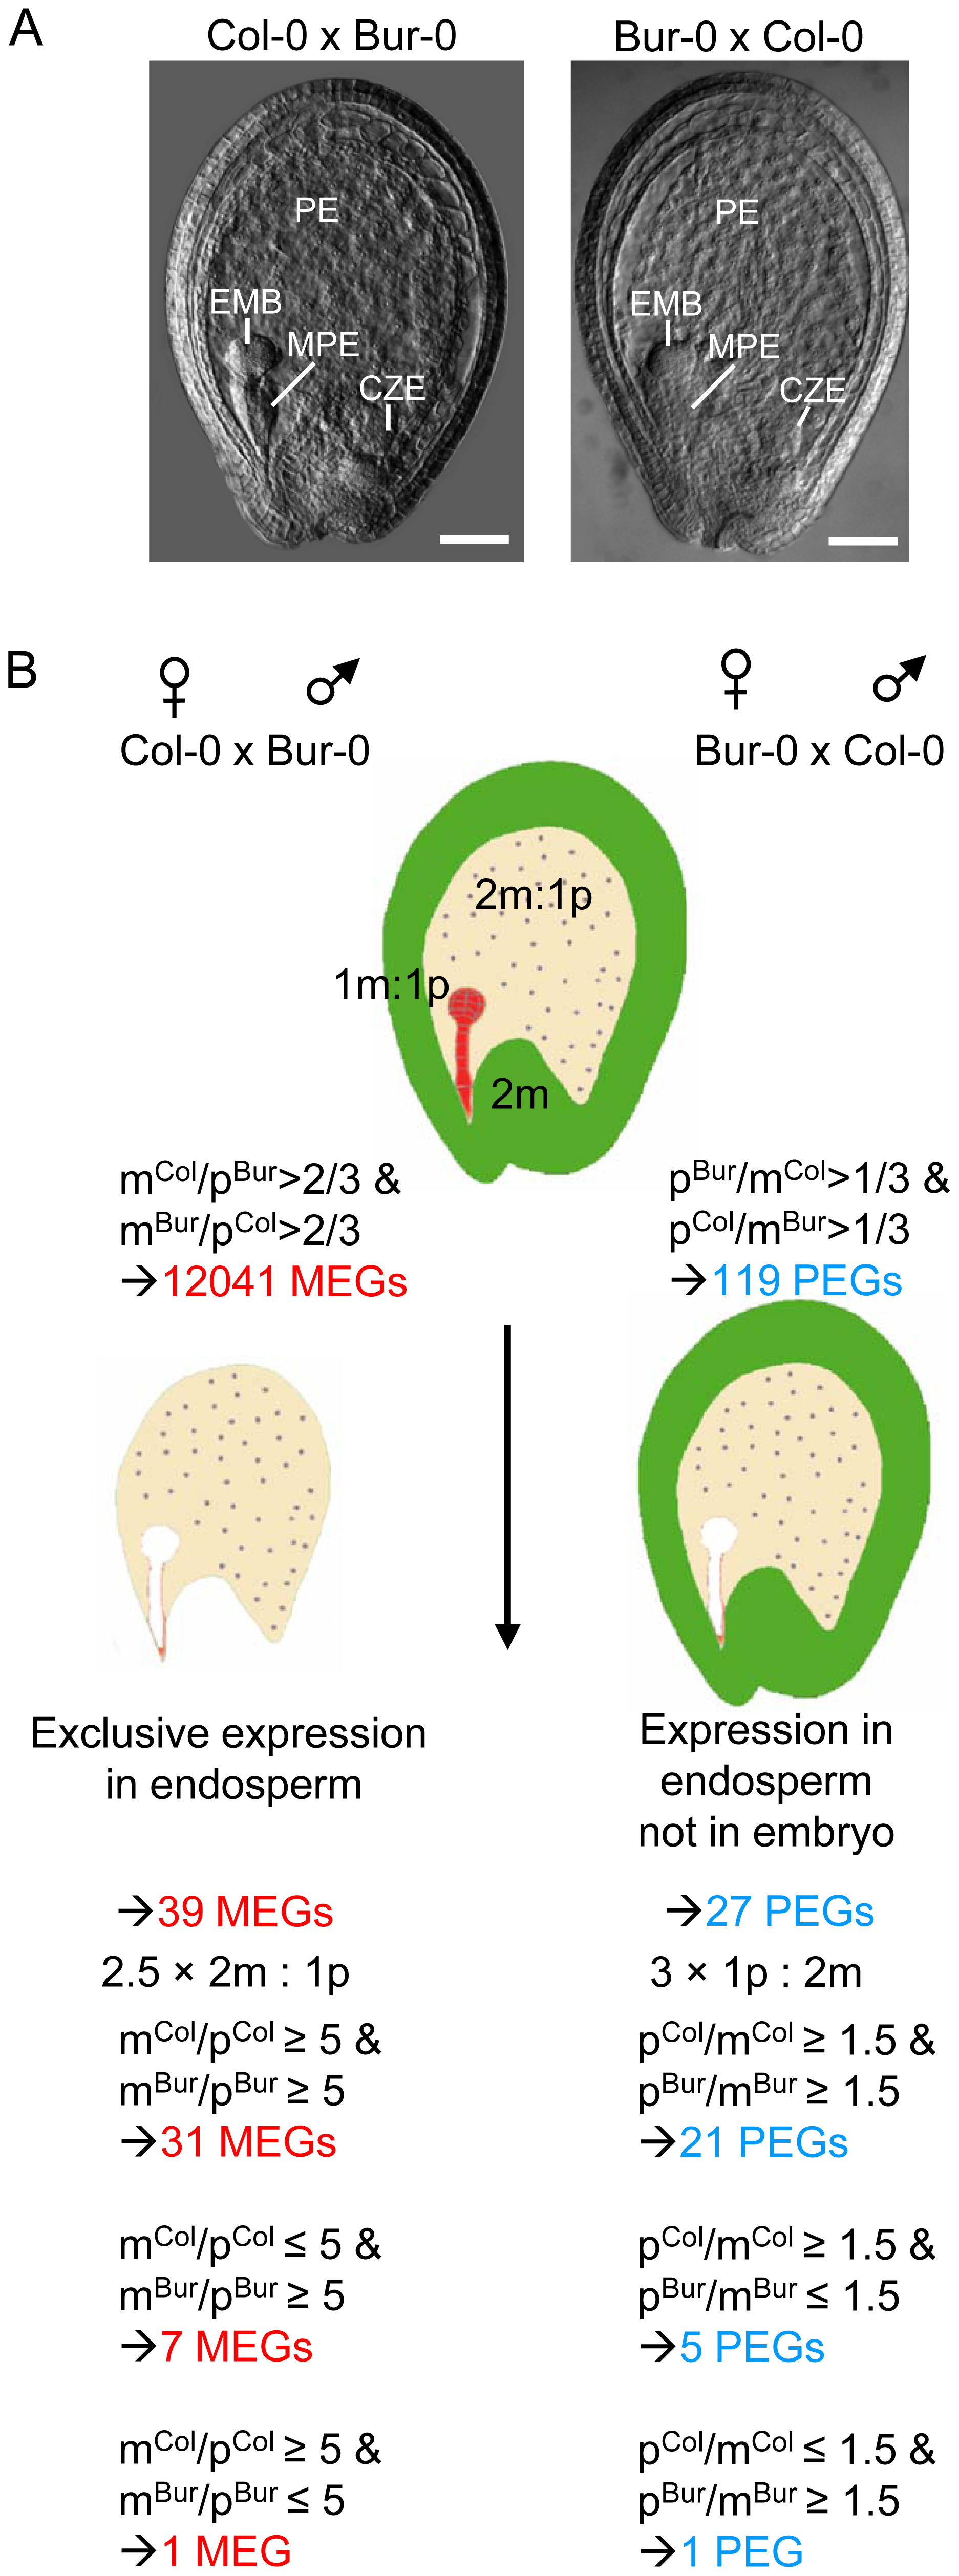 Scheme of Experimental Procedures Leading to the Identification of MEGs and PEGs in Arabidopsis.